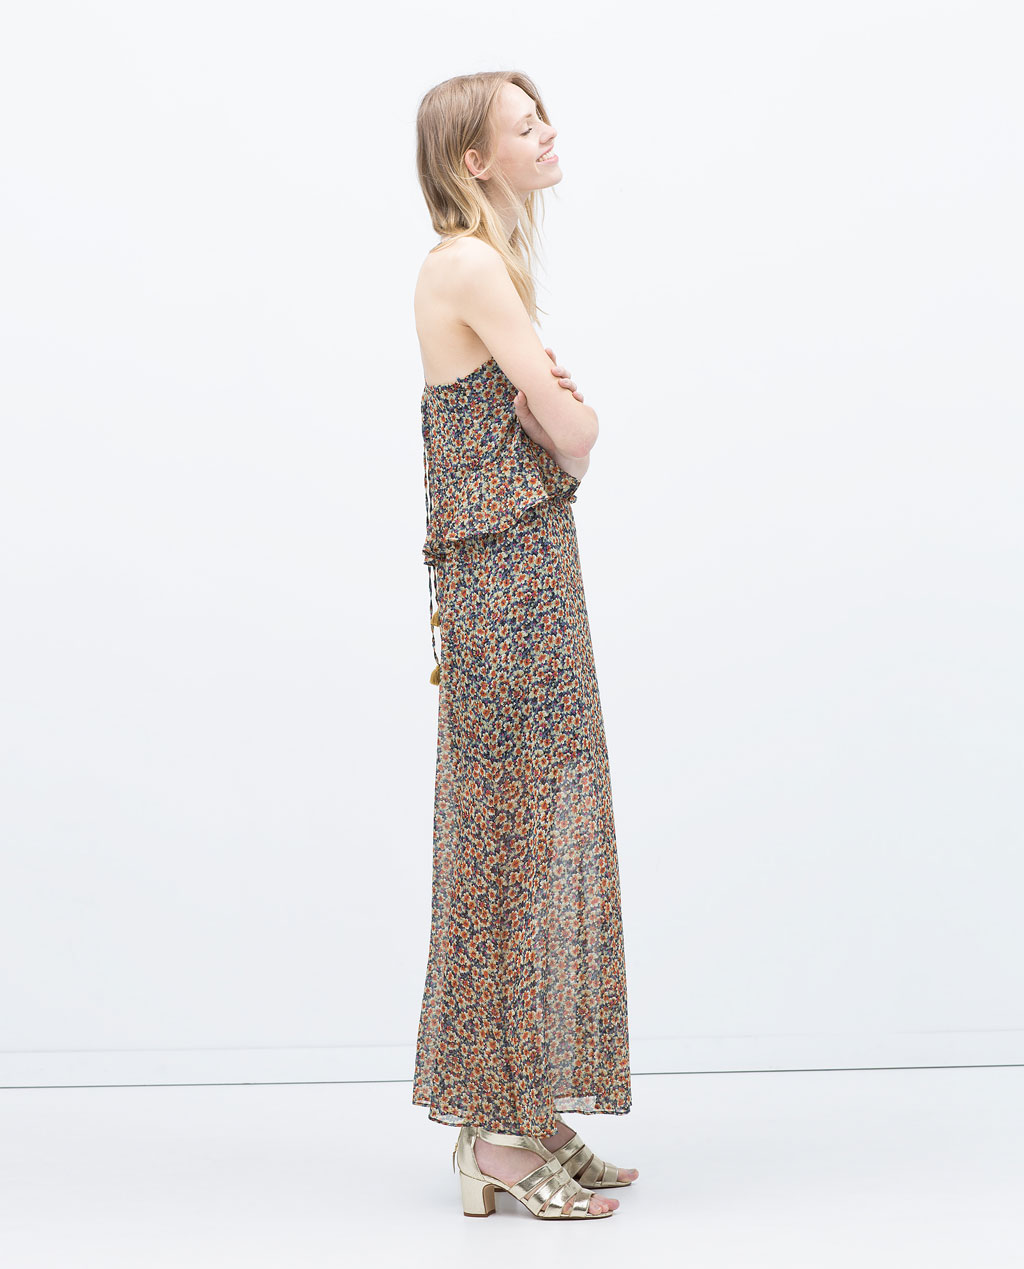 Floral dresses can be the formula to a great summer outfit. While it addselegance to your look, be careful of what fabrics you choose so they don't rub you the wrong way!. Stay away from laces and heaver fabrics. Trylooking for breathe easy materials like cotton!